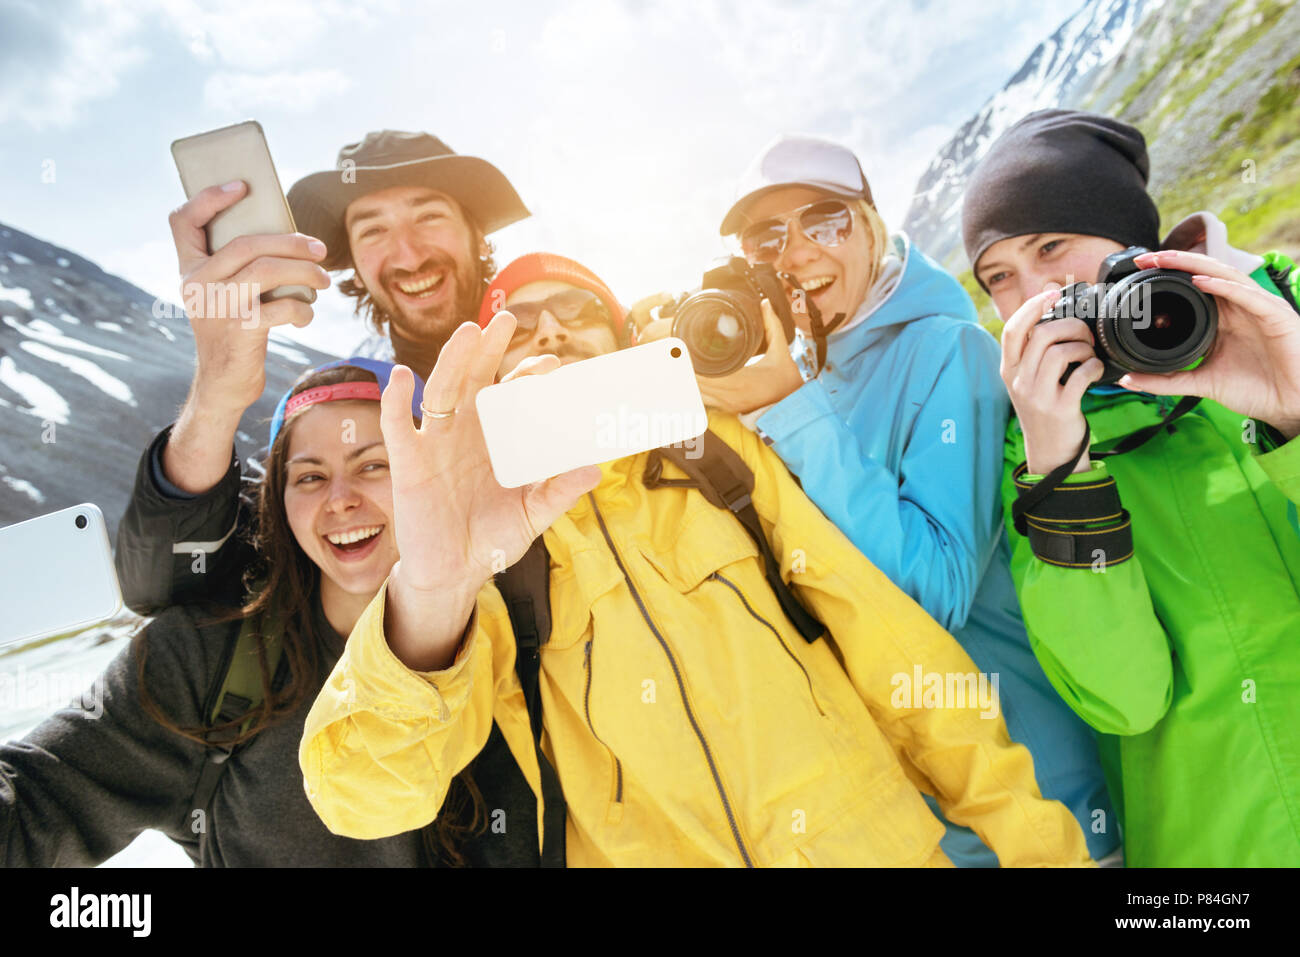 Amis touristes heureux groupe selfies photo Photo Stock